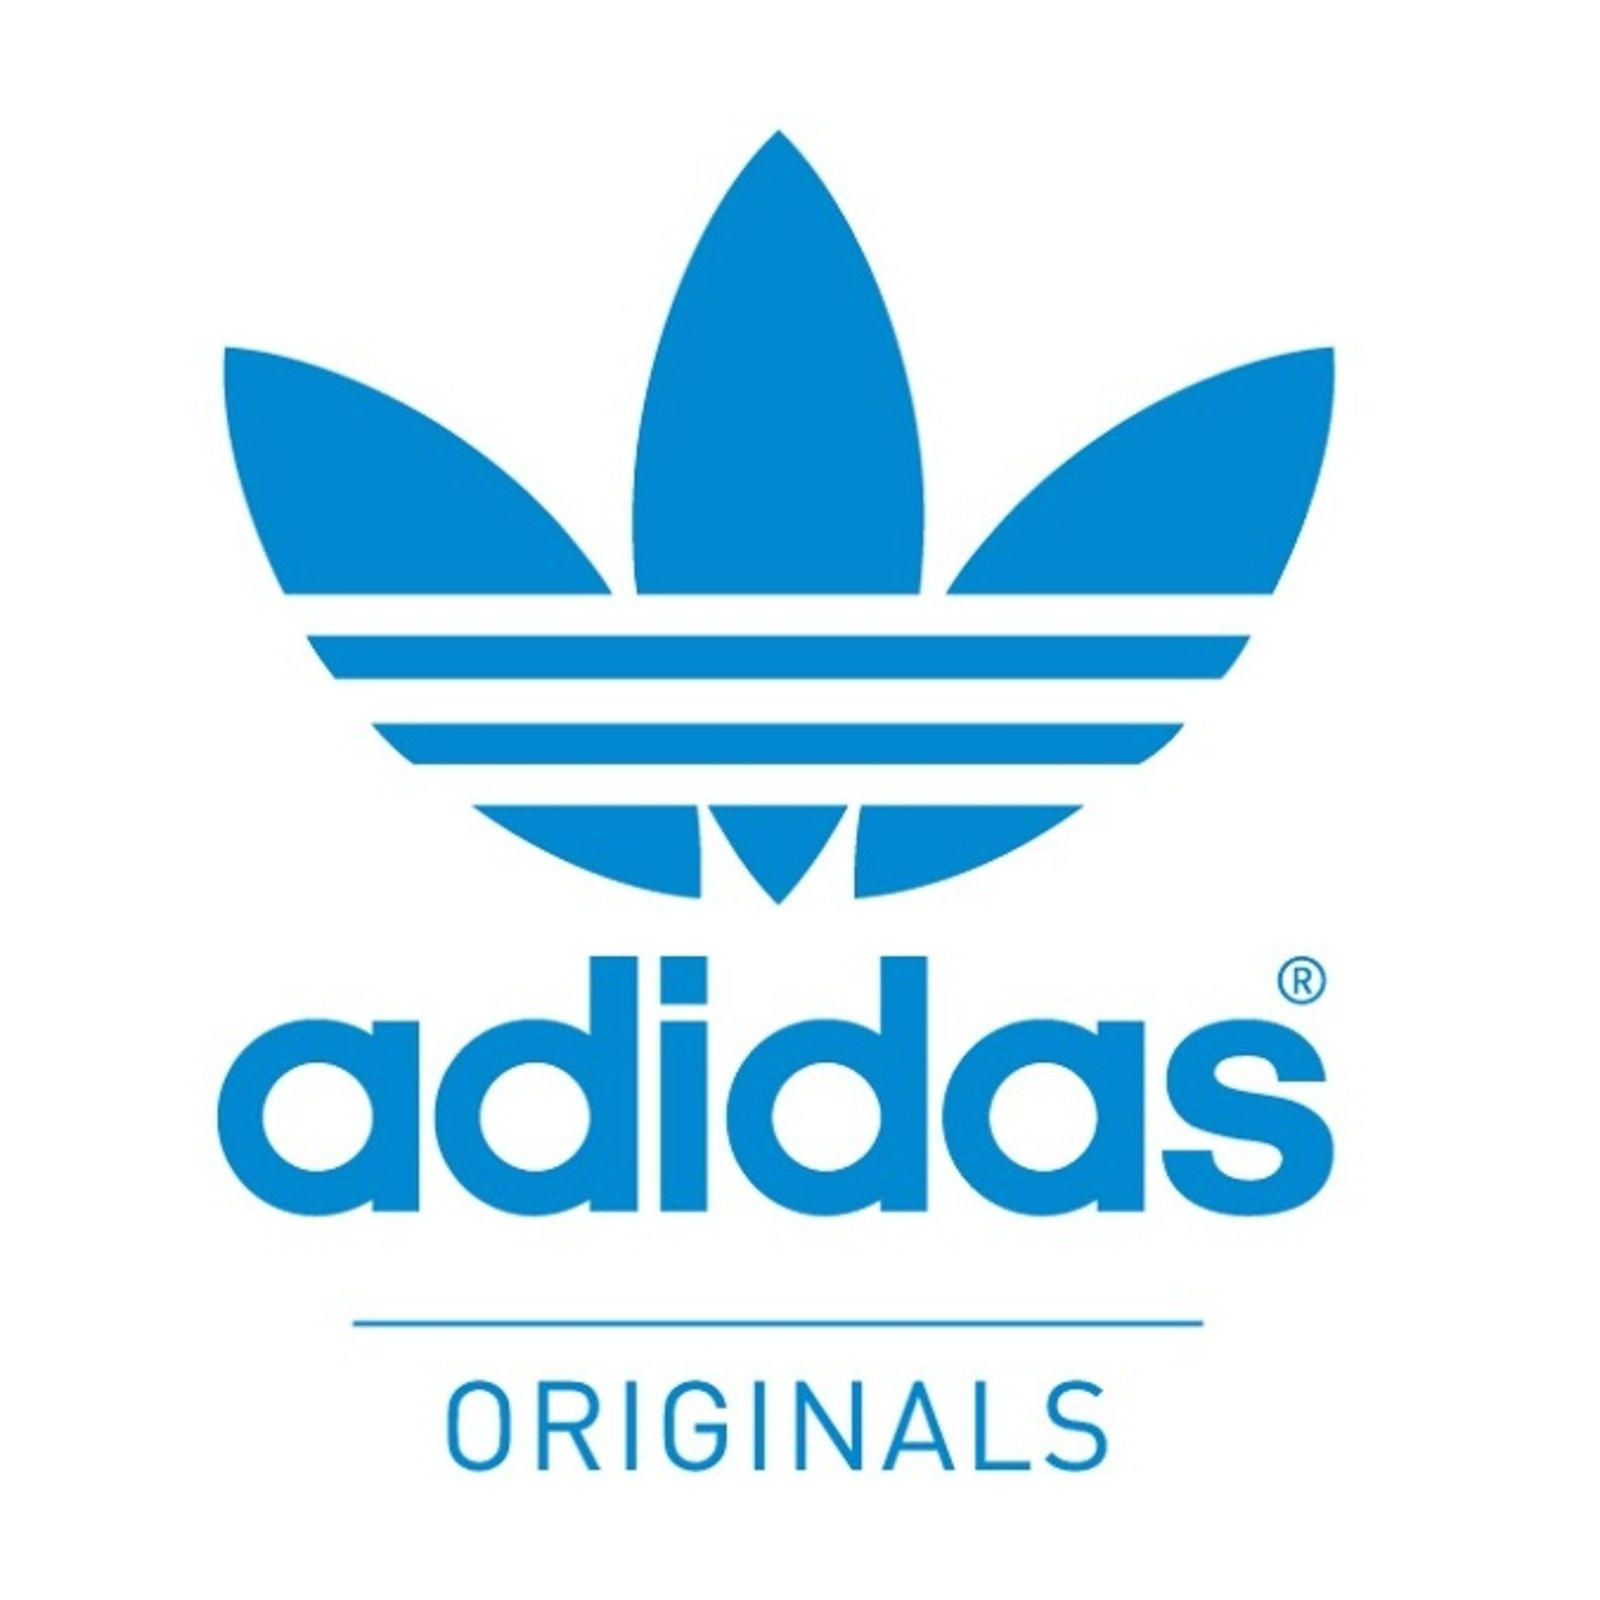 adidas Originals (Bild 1)